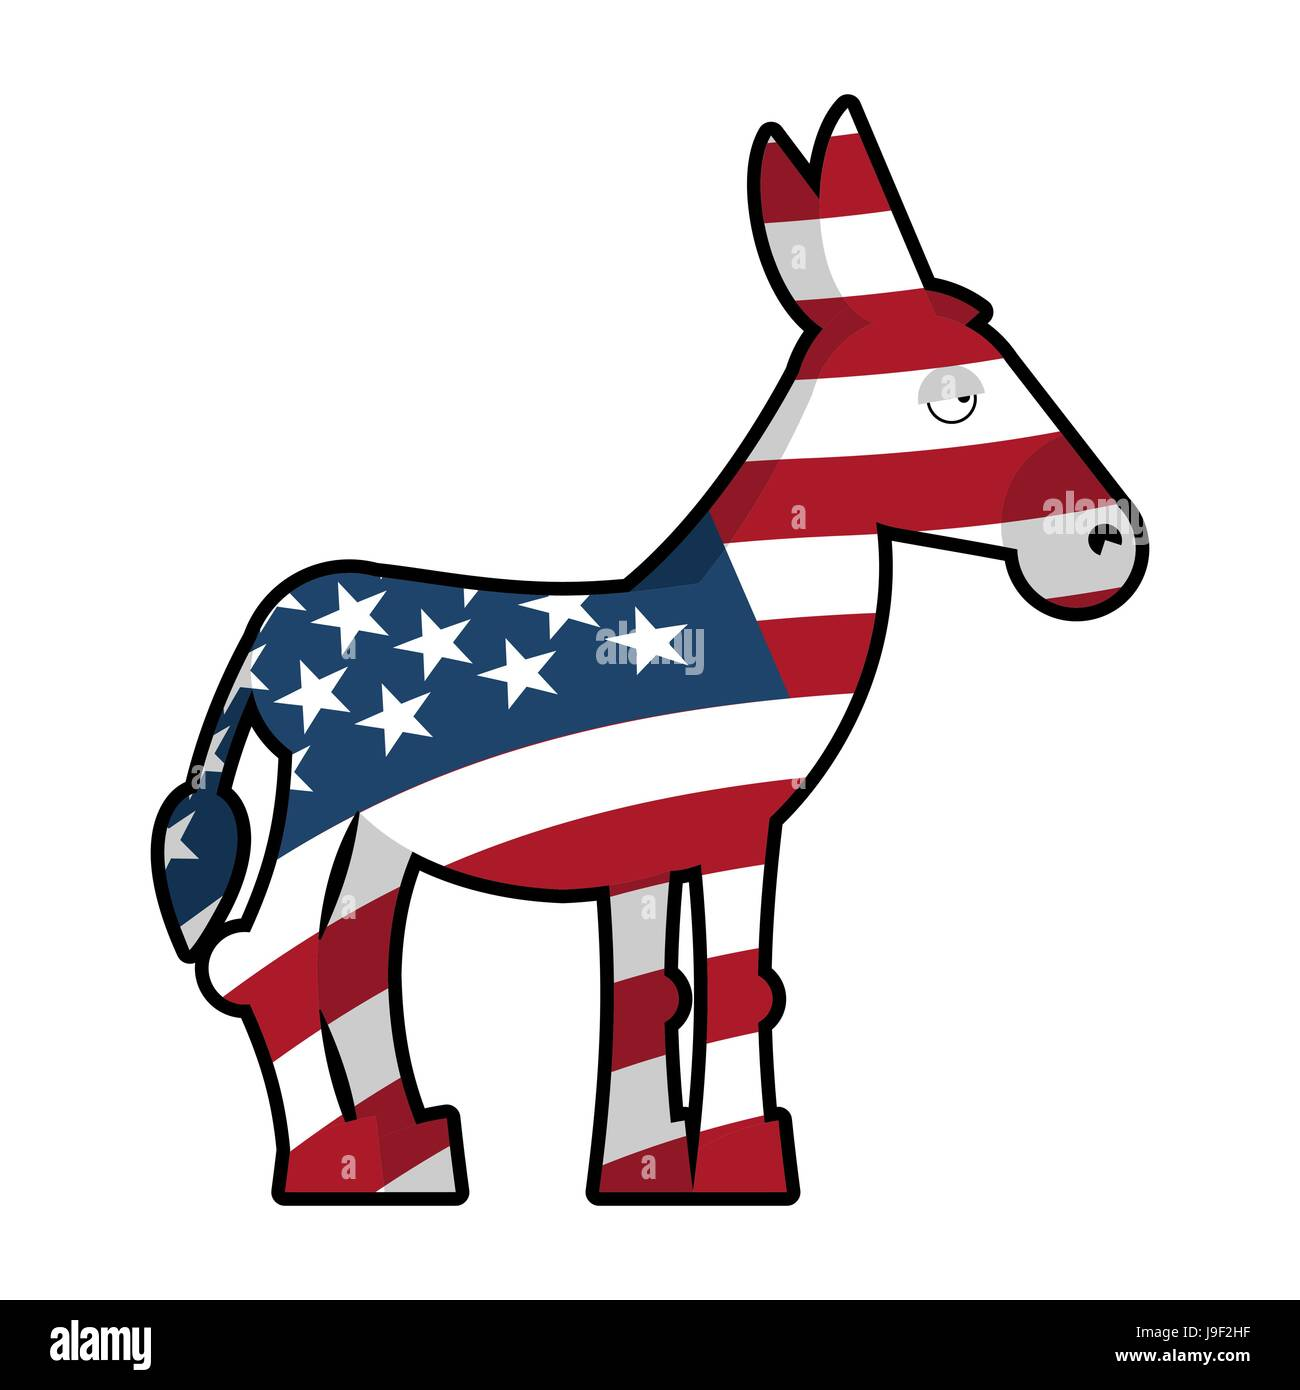 Donkey Democrat Symbol Of Political Party In America Usa Flag